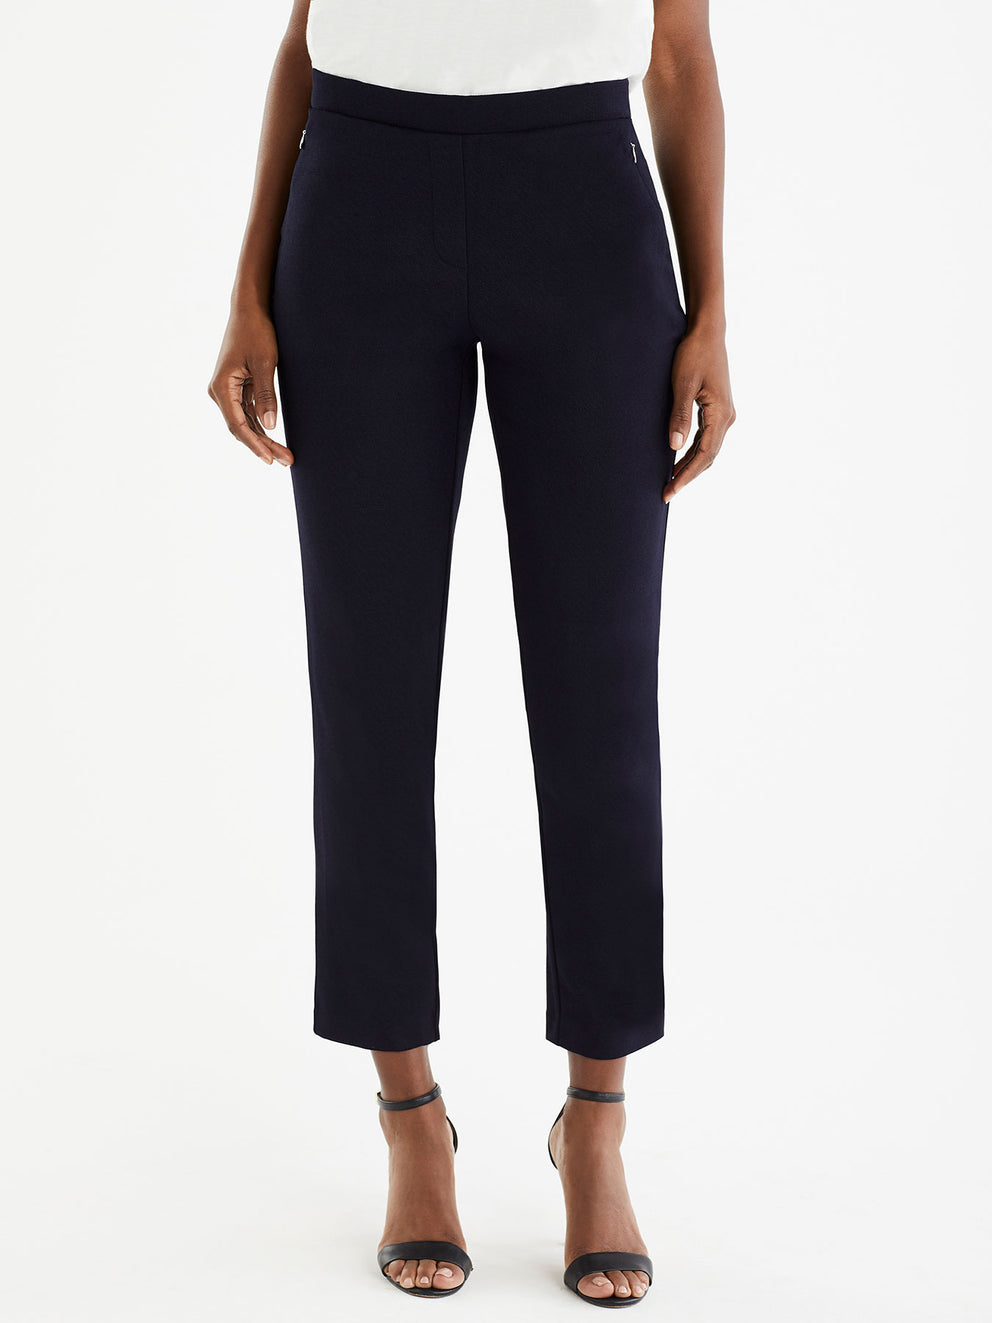 The Jones New York Ponte Shadow Plaid Pull-On Pant in color Navy - Image Position 1